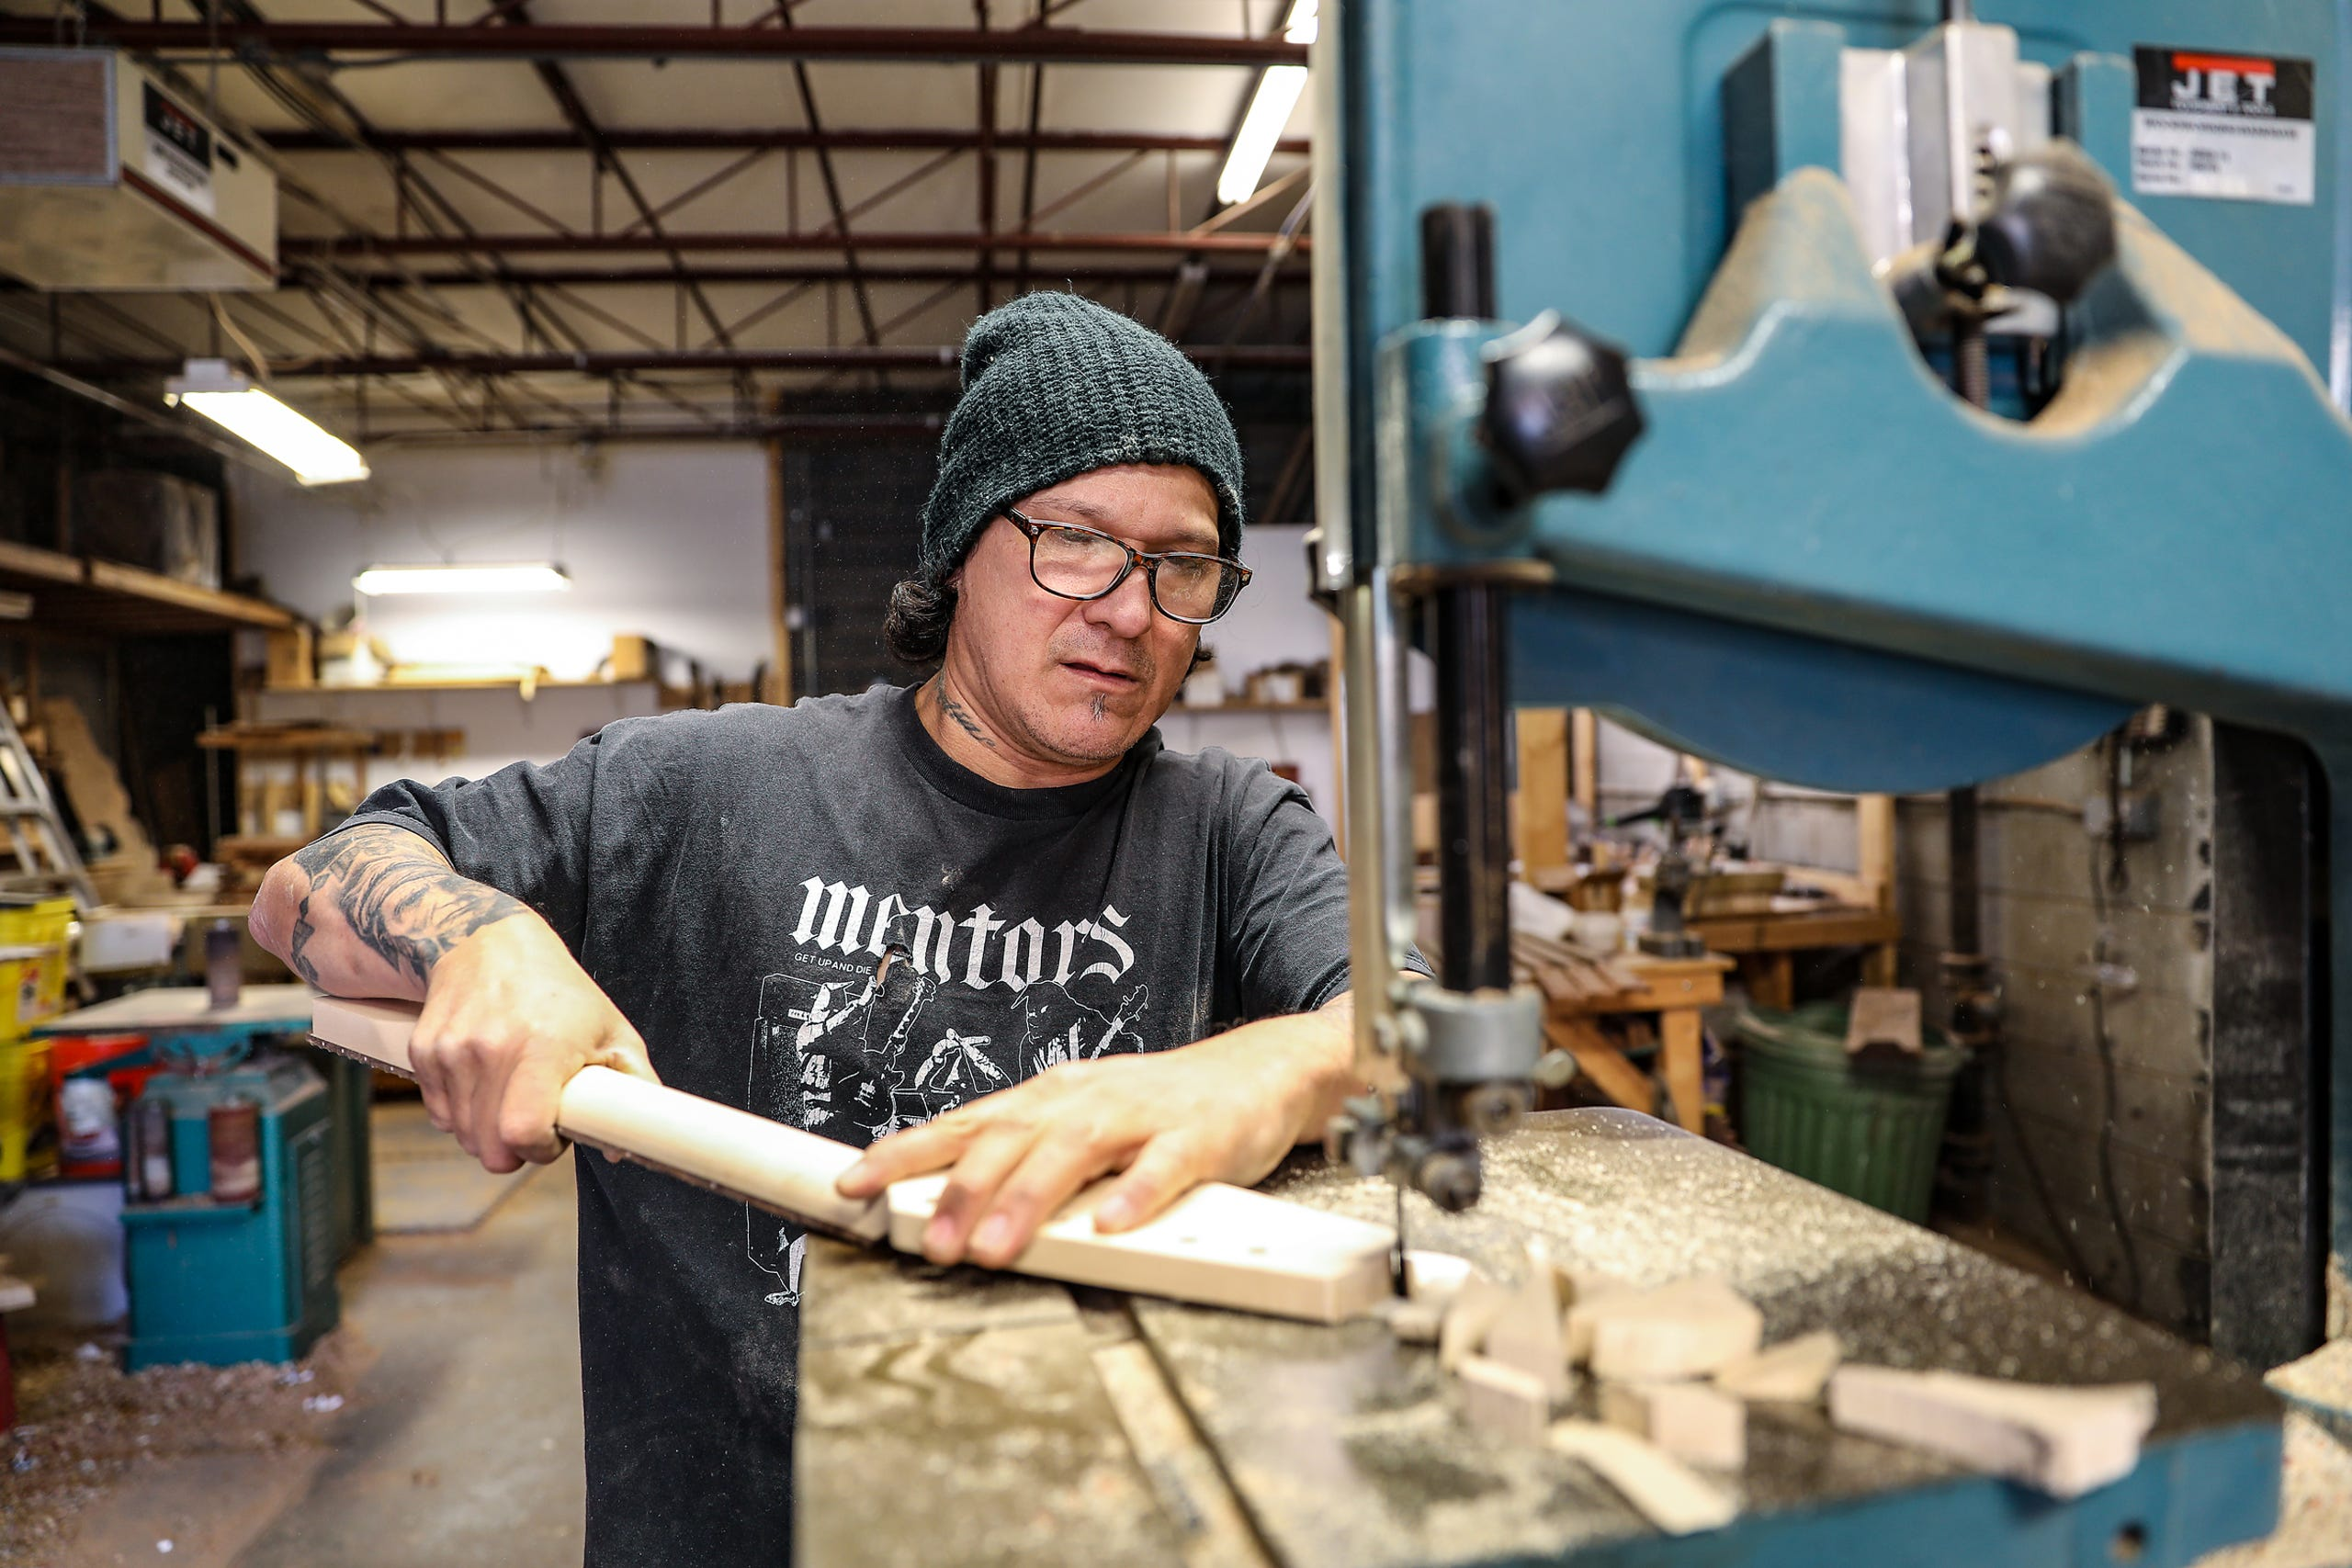 Gabriel Currie, 52, of Detroit works in his woodworking studio where he handcrafts guitars for the company he founded, Echopark Guitars, in the Old Redford neighborhood of Detroit on Nov. 12, 2020. Currie moved to Detroit in 2017 with his family from Los Angeles after finding a historic home in Detroit and to continue his craftsmanship.